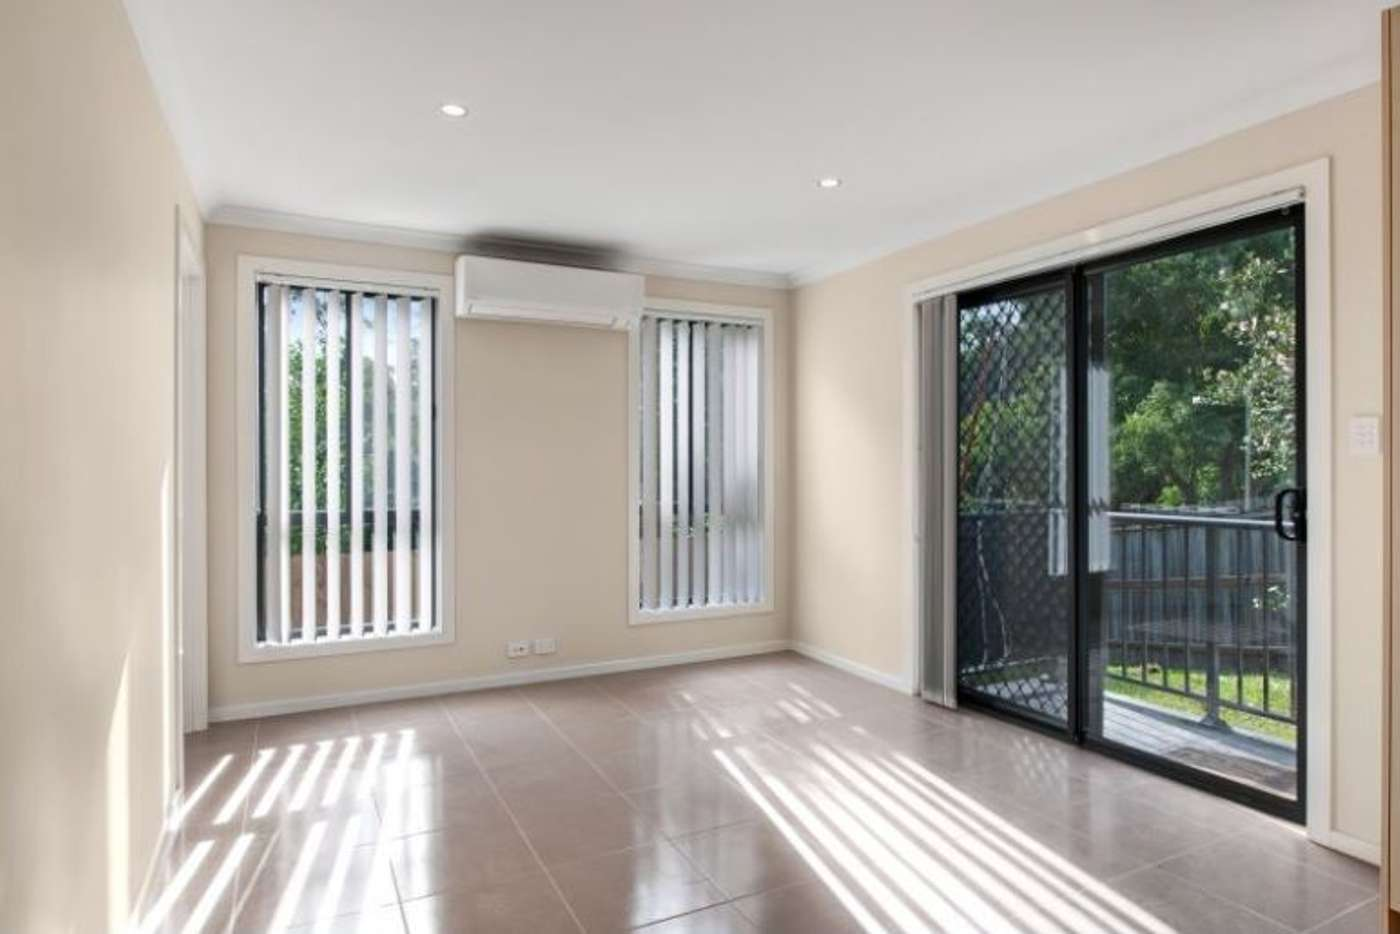 Fifth view of Homely house listing, 19a Pomona Street, Pennant Hills NSW 2120